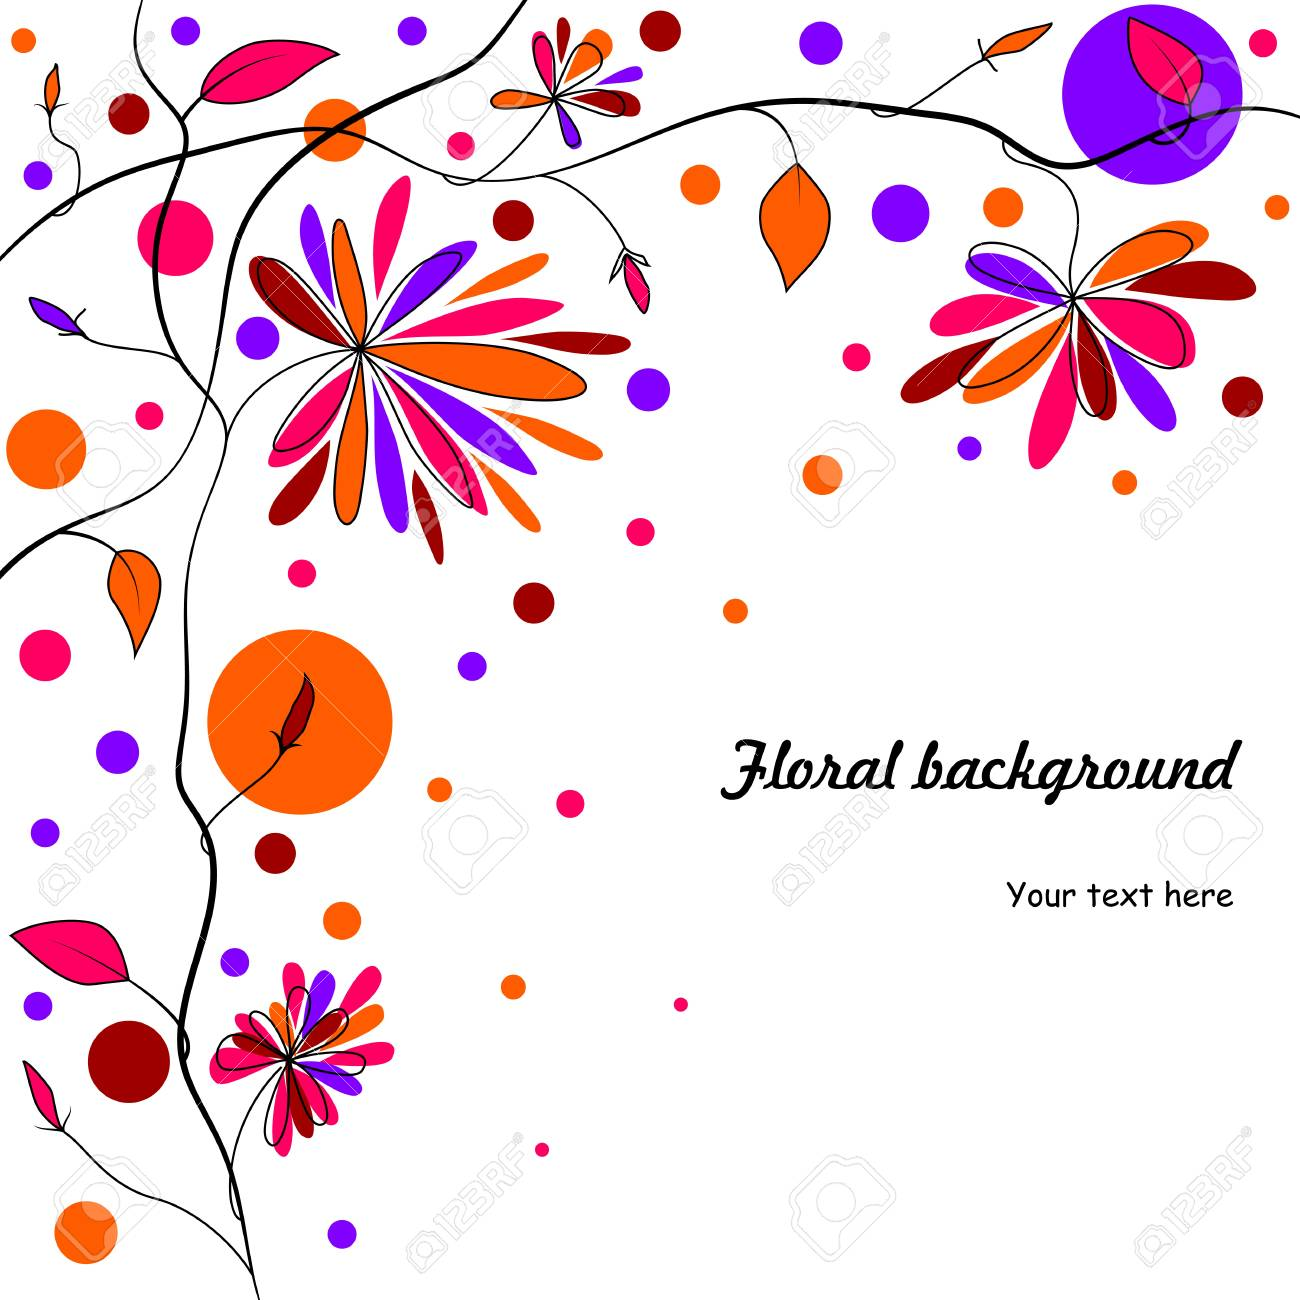 abstract floral background Stock Vector - 18403859